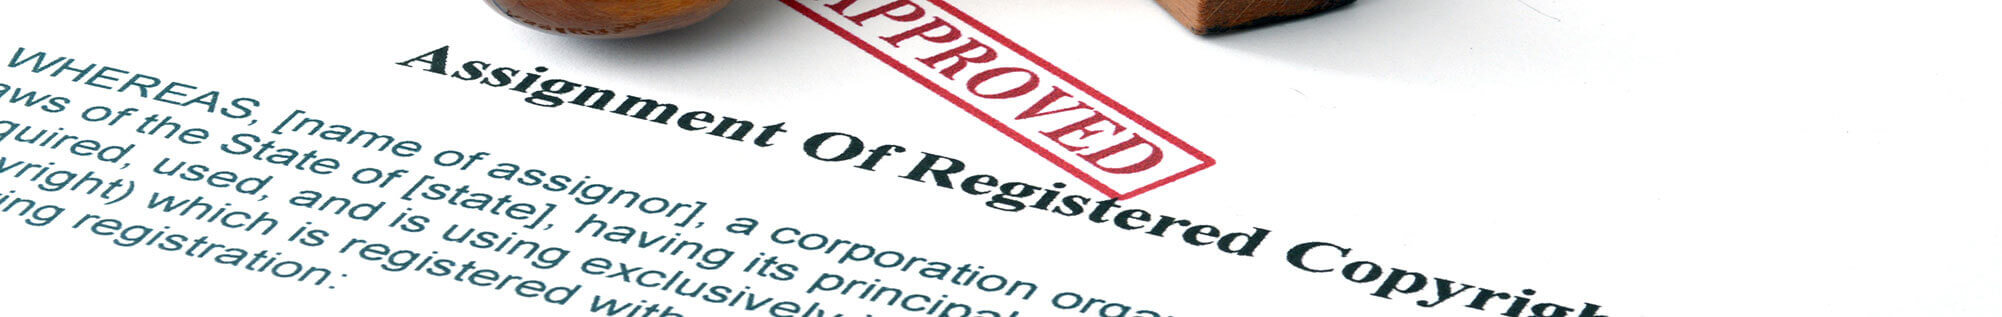 assignment of registered copyright document